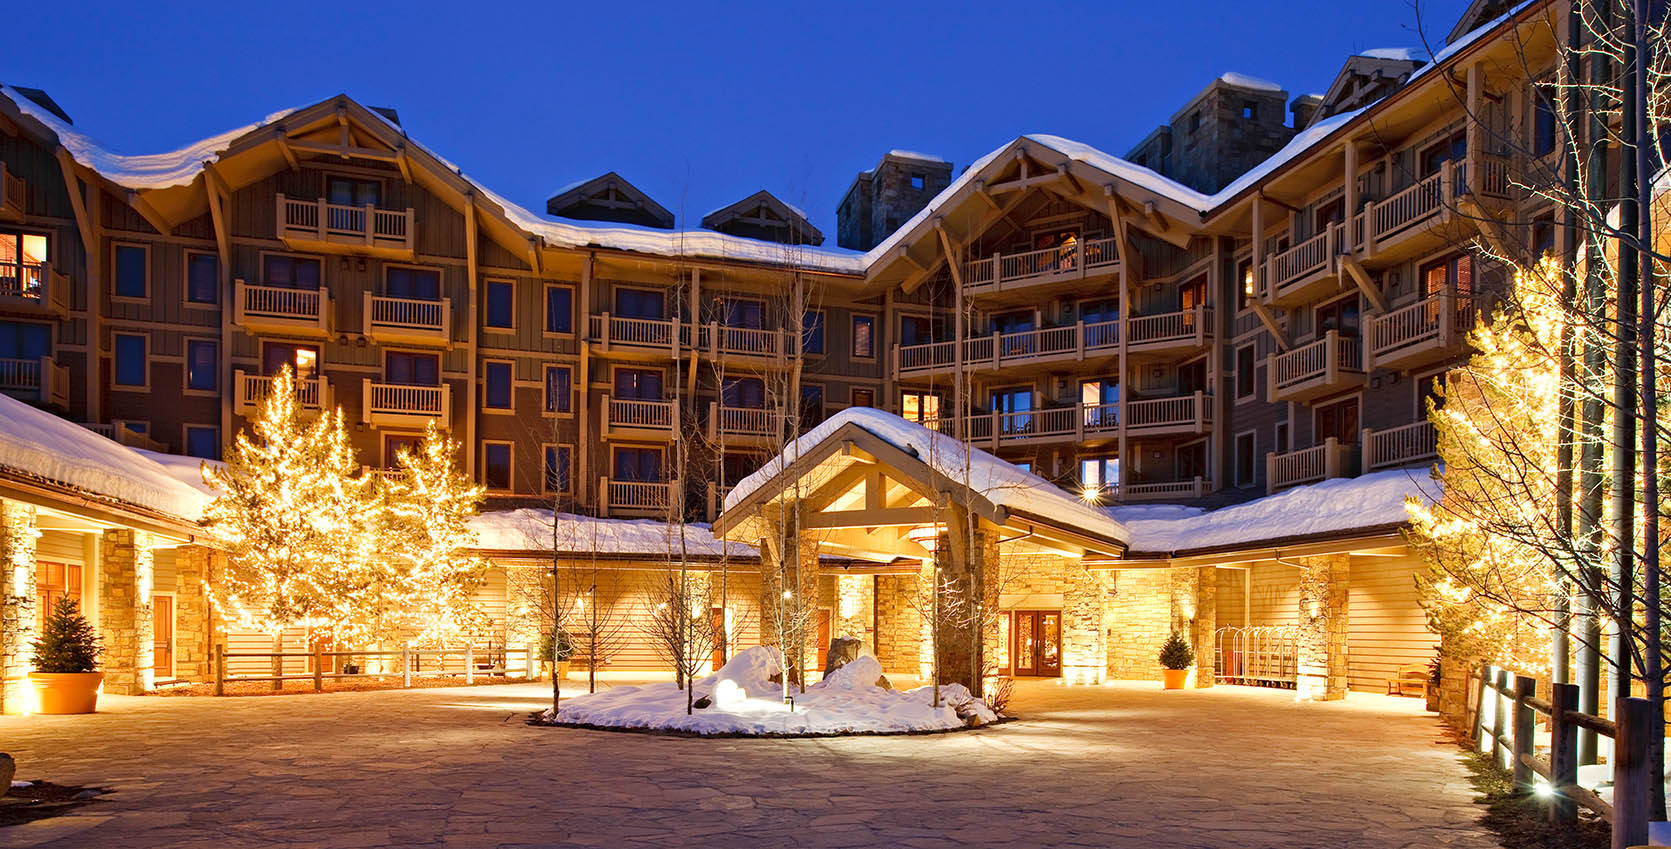 Robert green company commercial real estate development for Luxury hotel jackson hole